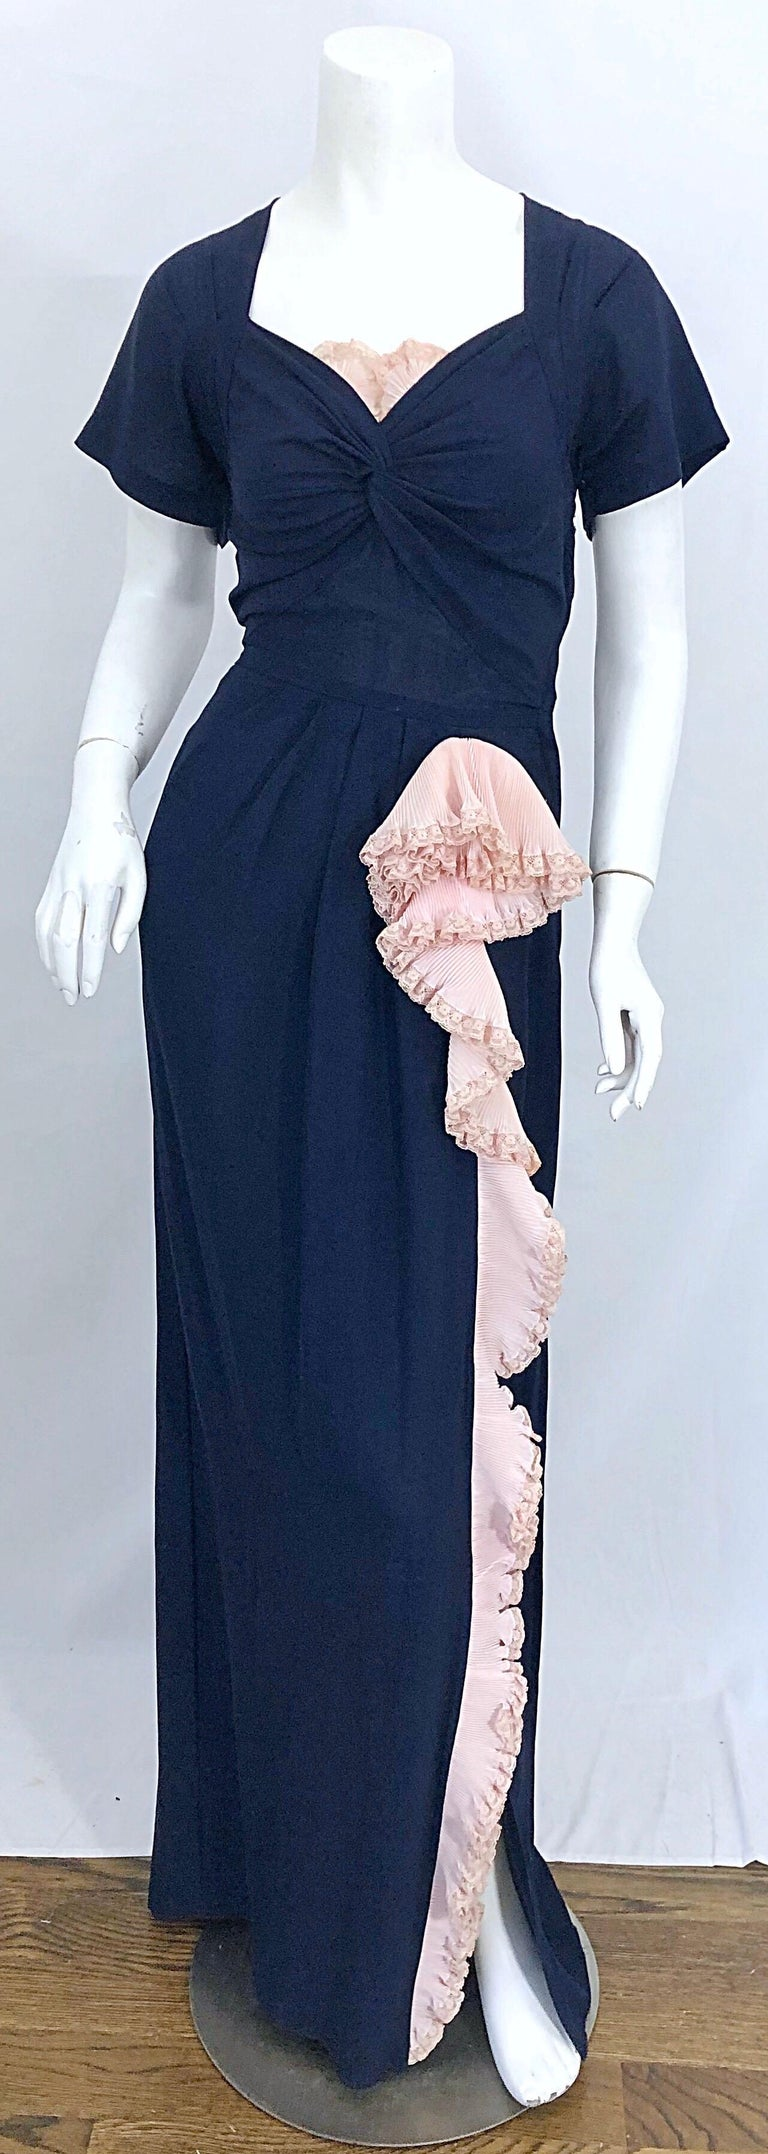 Beautiful vintage 1940s demi couture navy blue and light pink short sleeve crepe gown! Features a gathered sweetheart neckline with pale pink lace above the bust. Pale pink ruffle along the left leg, with a slight slit at the hem. The back of the